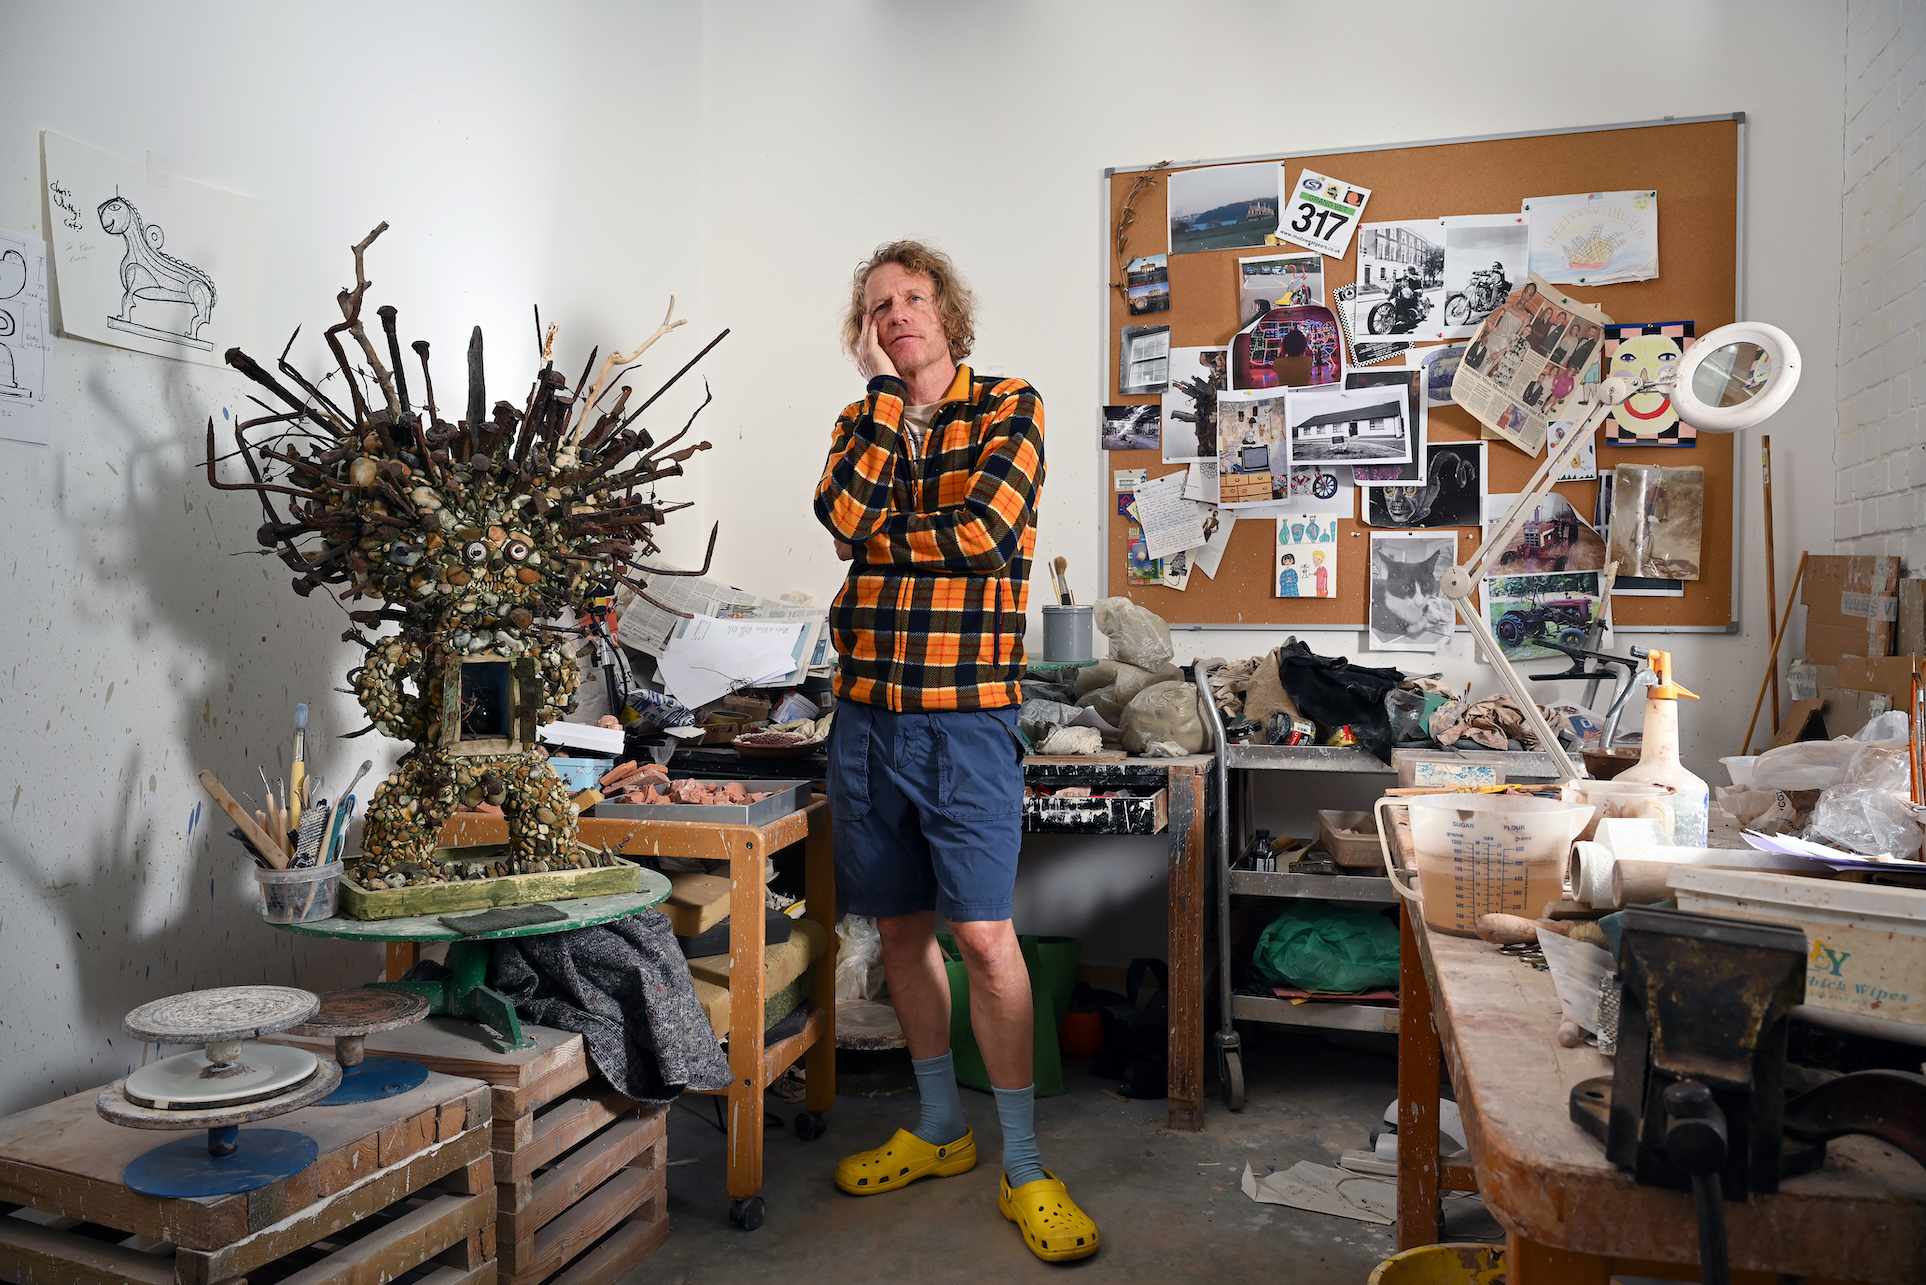 Grayson Perry: 'Some arts orgs need to go'